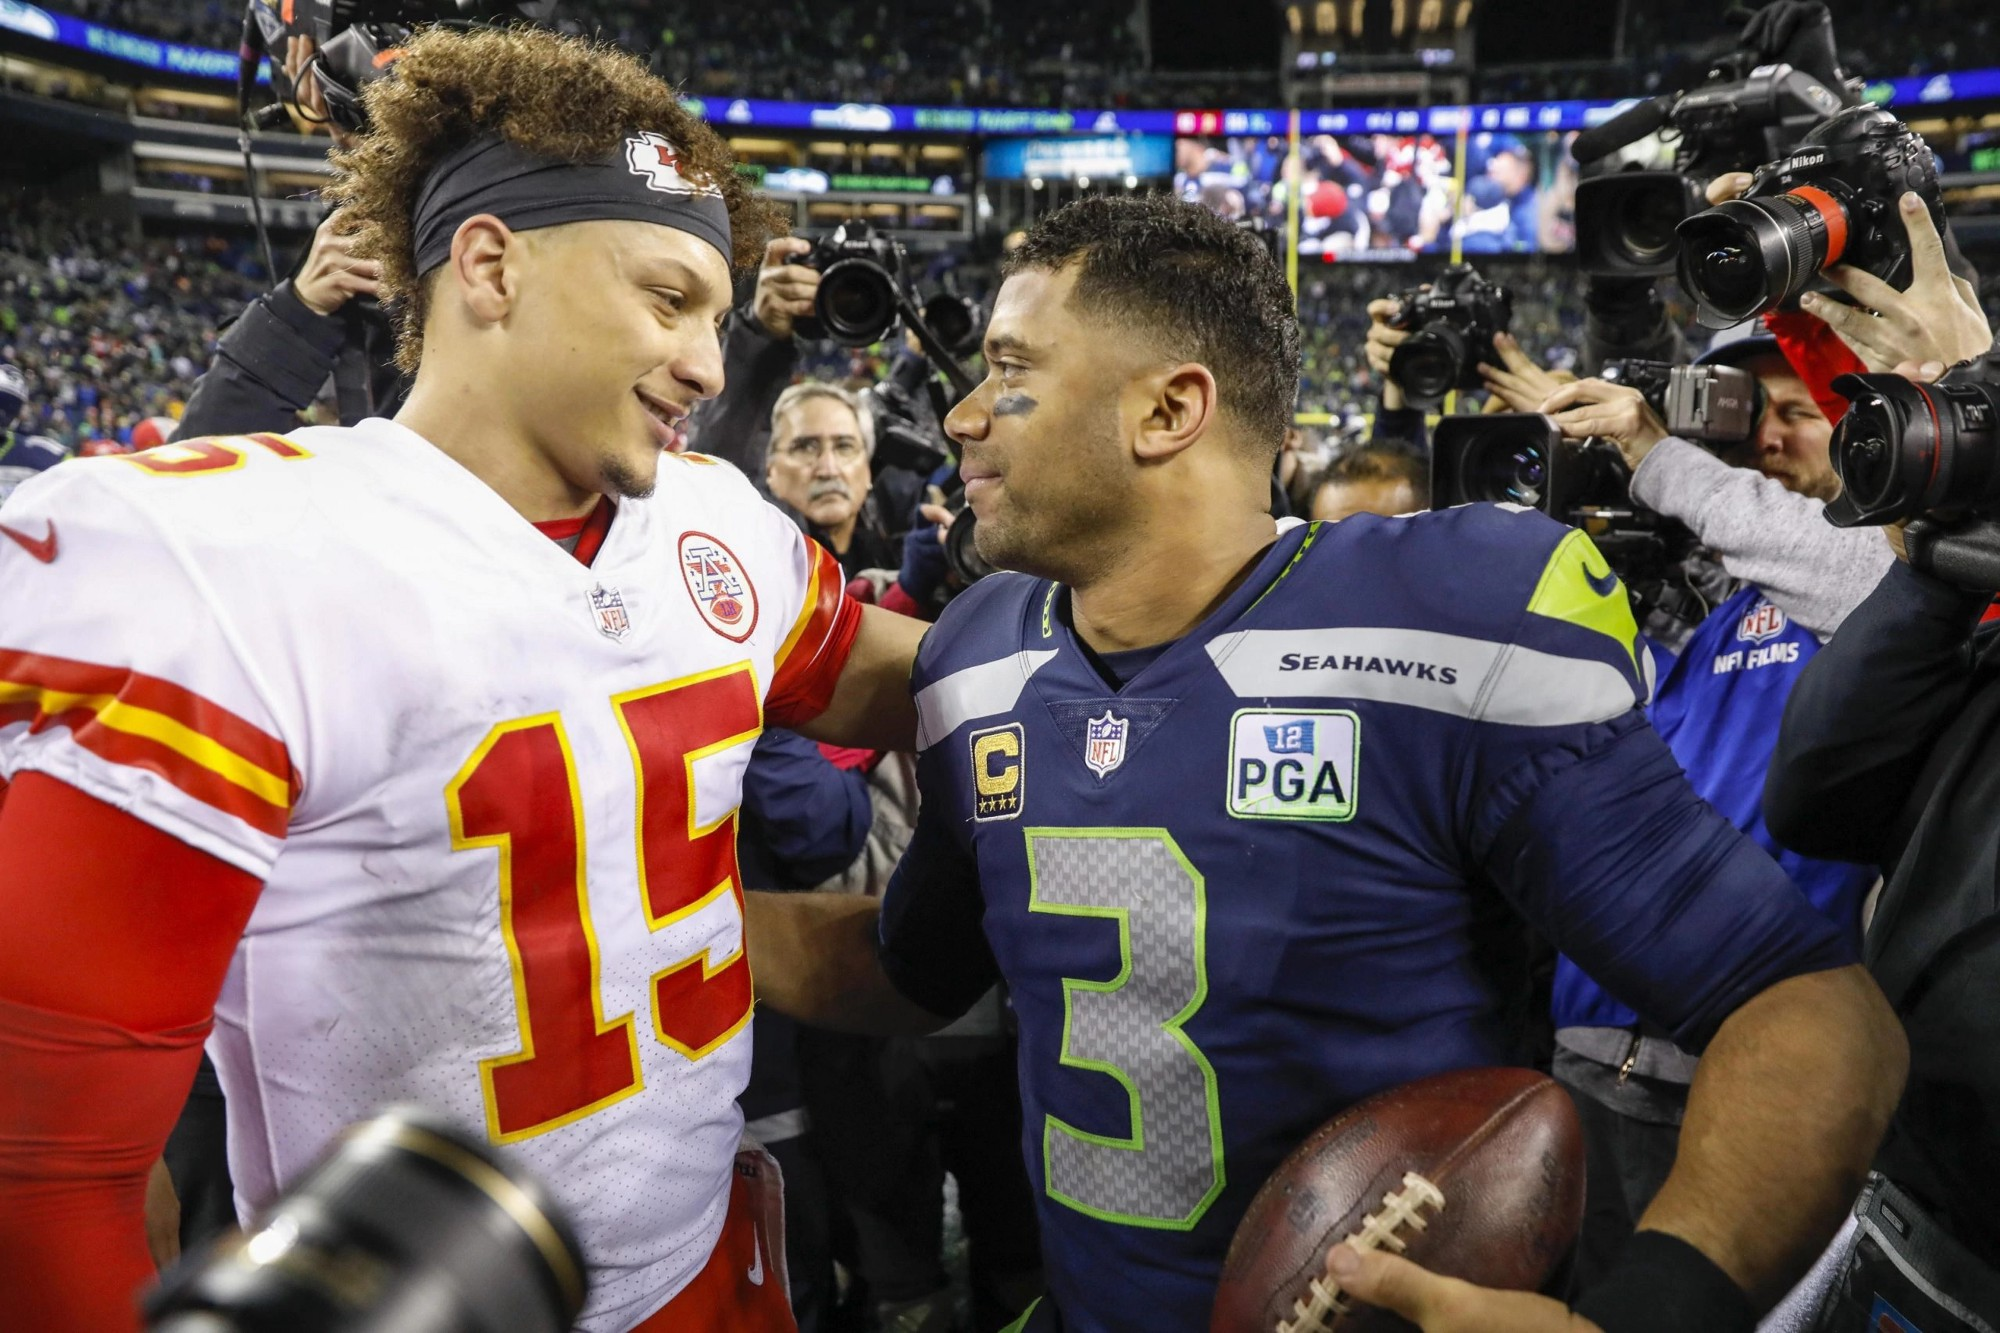 Patrick Mahomes and Russell Wilson make the Chiefs and Seahawks clear Super Bowl contenders. How many other teams join them?